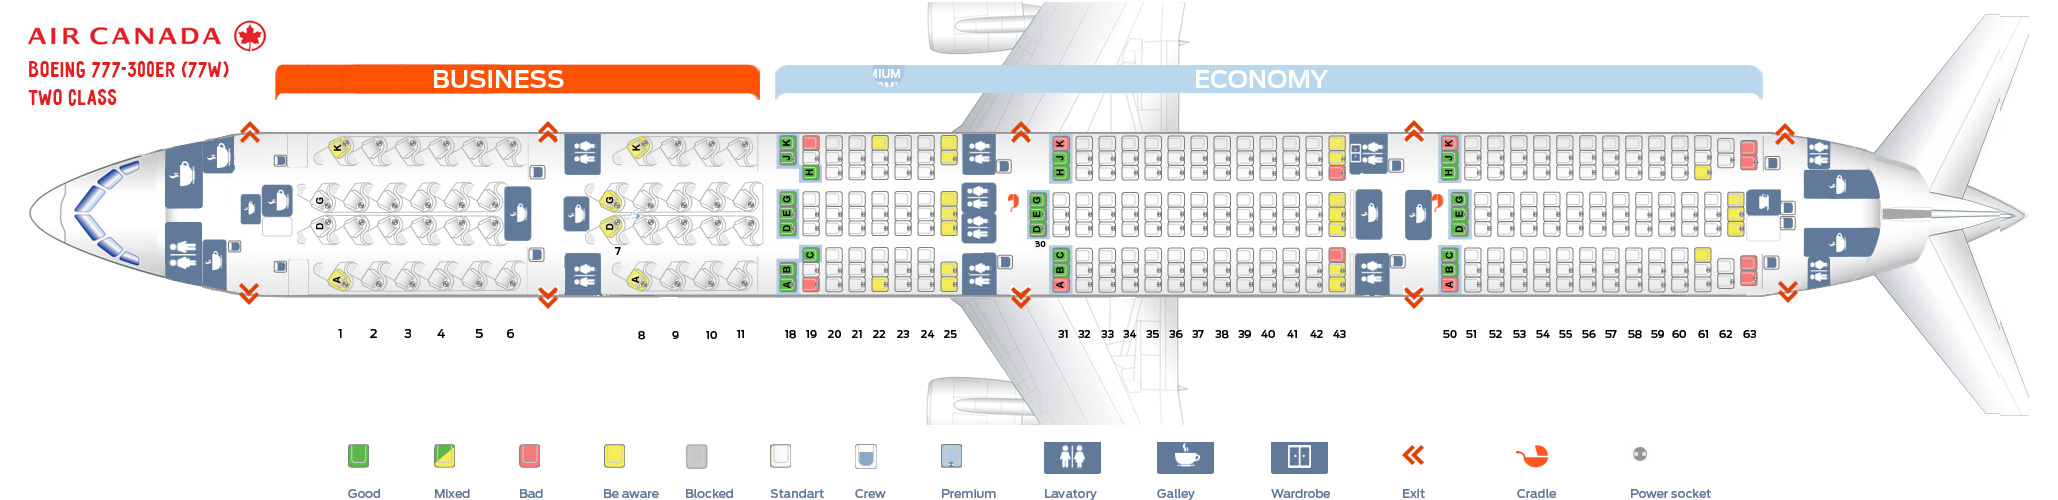 777 Seat Map Air Canada Seat map Boeing 777 300 Air Canada. Best seats in plane